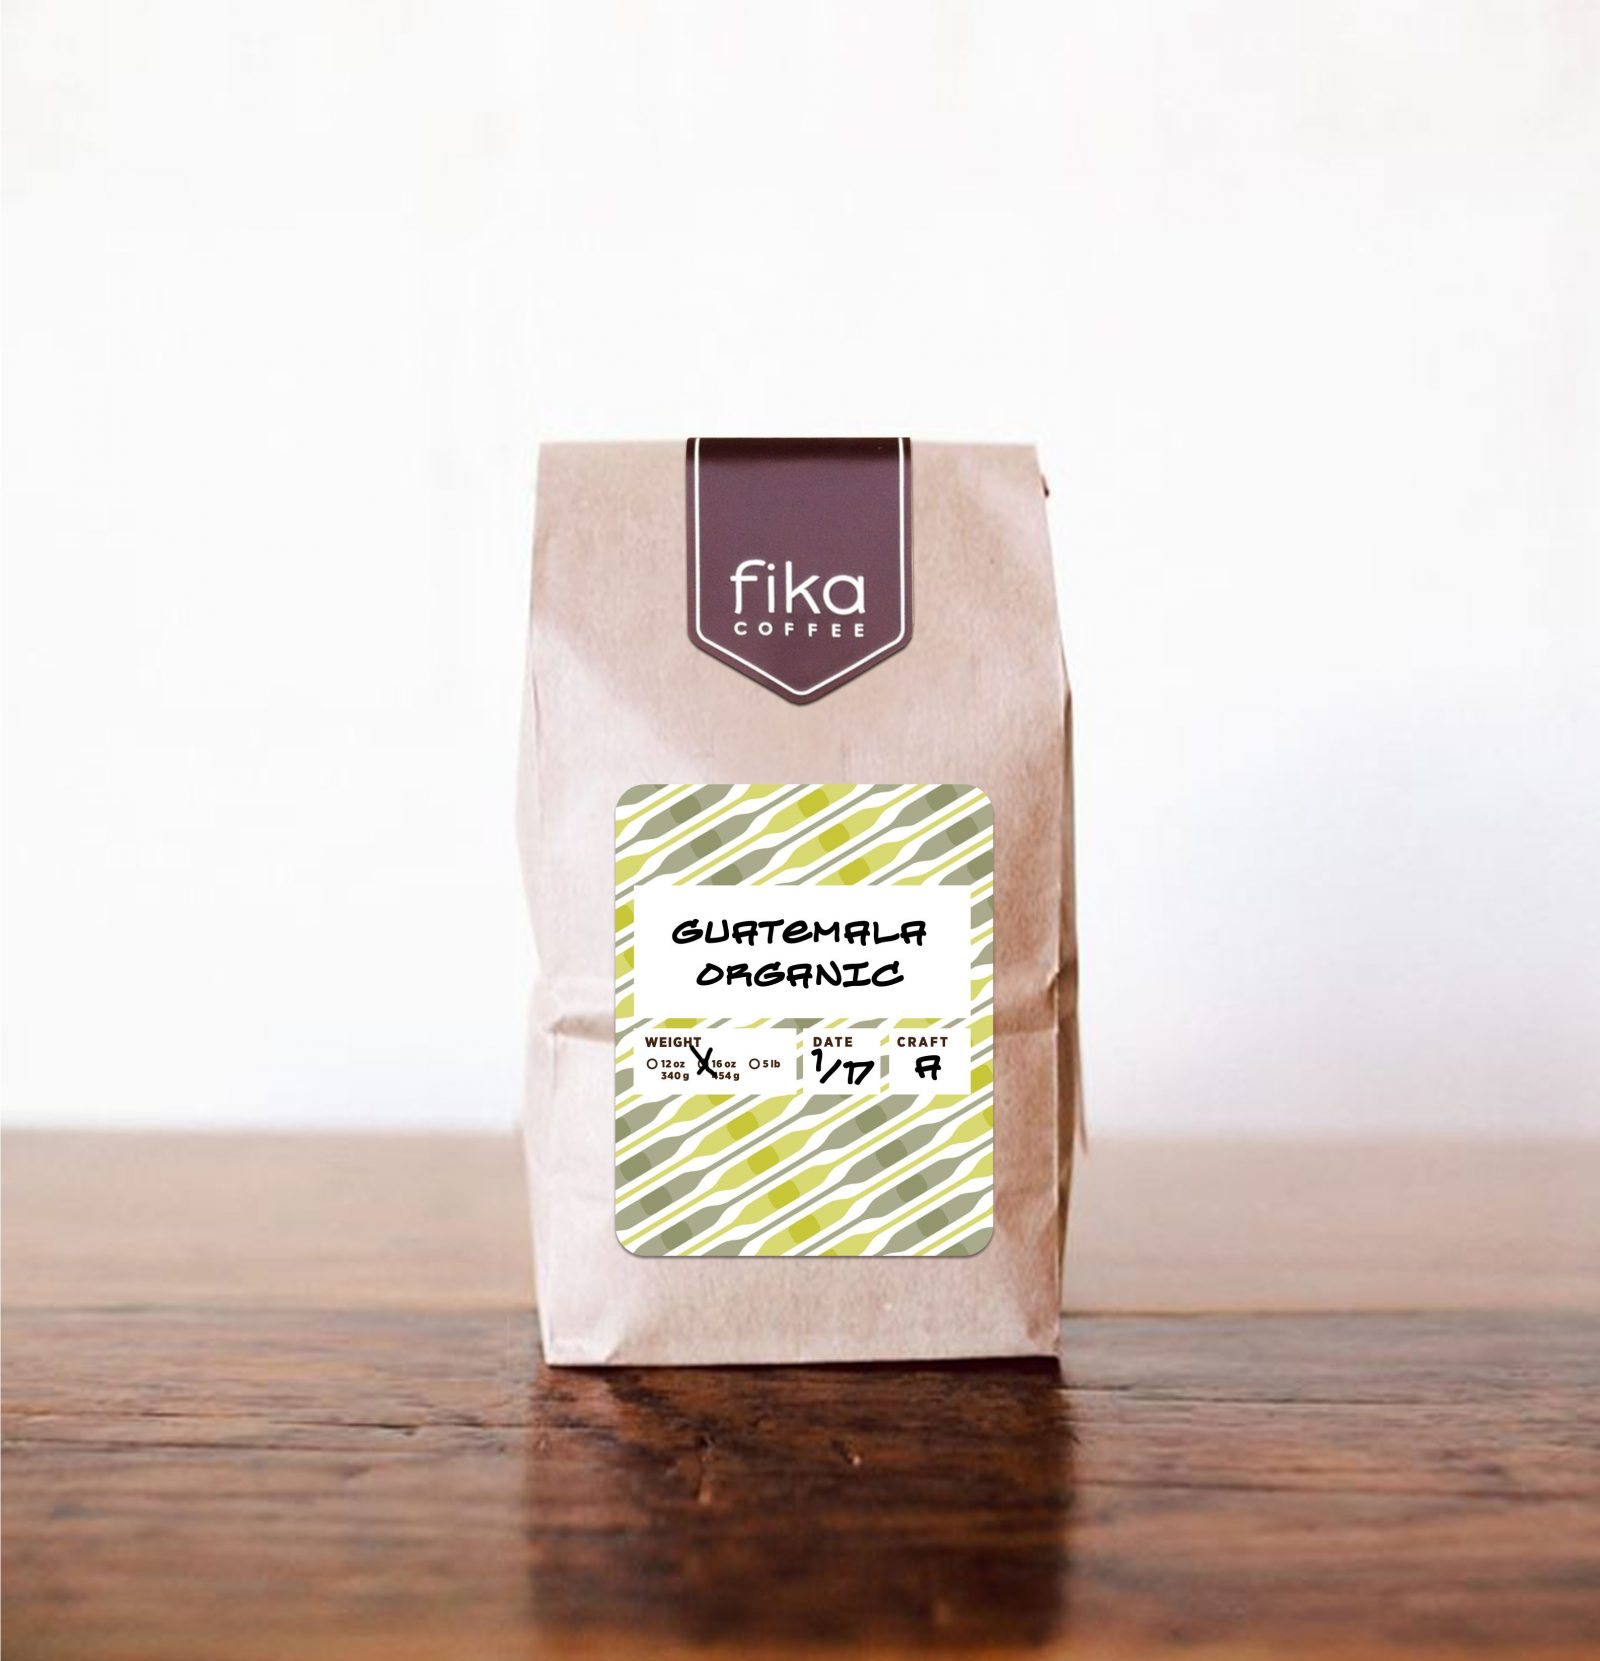 Fika Coffee Packaging Label Sticker-tall 2016-A